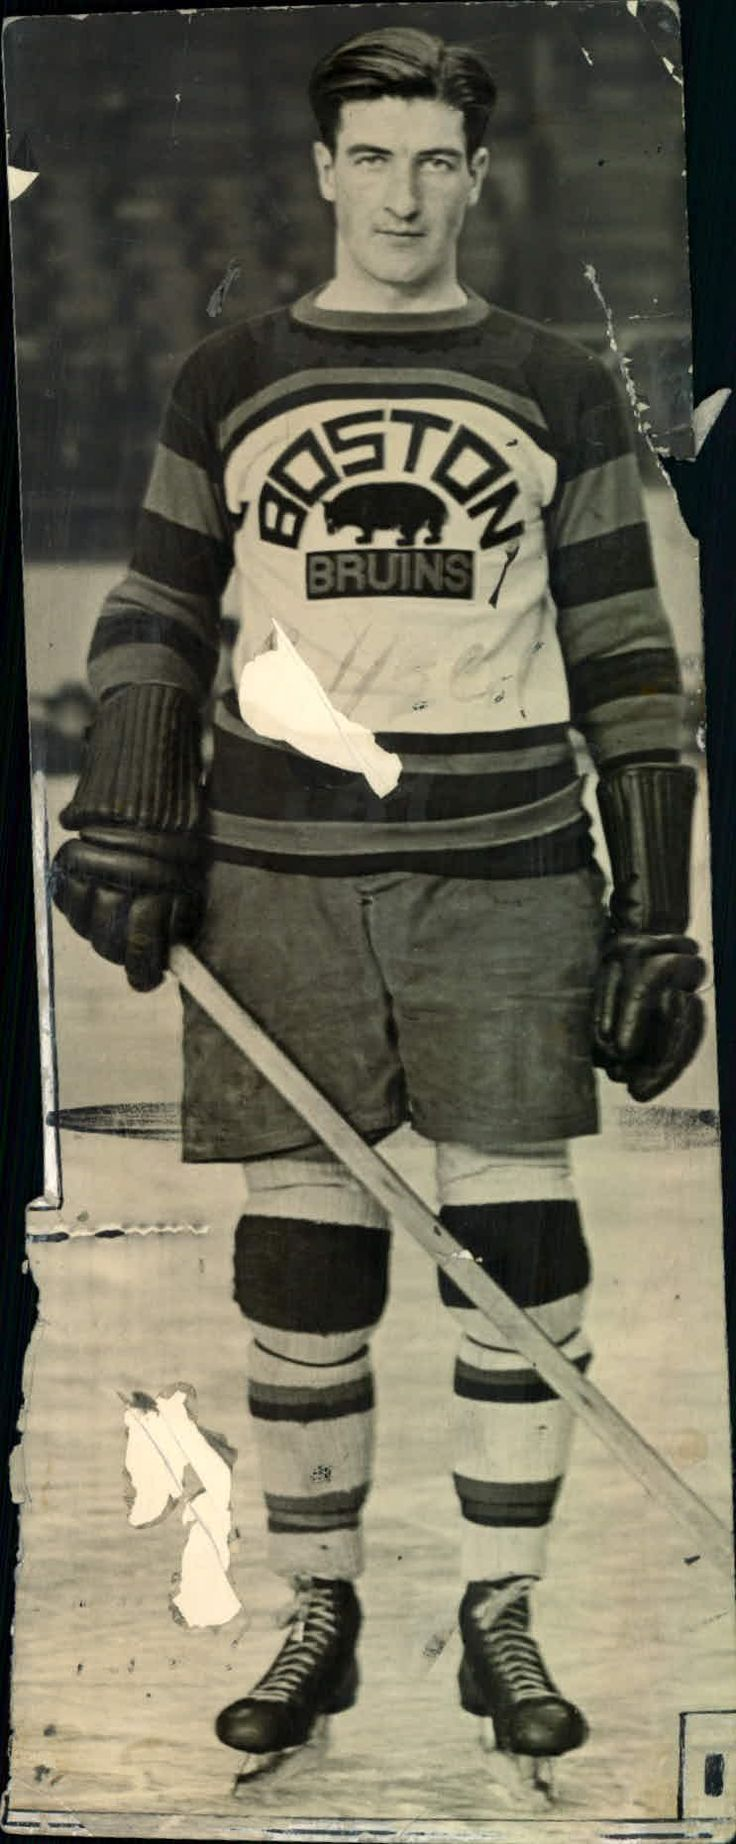 1929 bruins - Old School Hockey all the way!